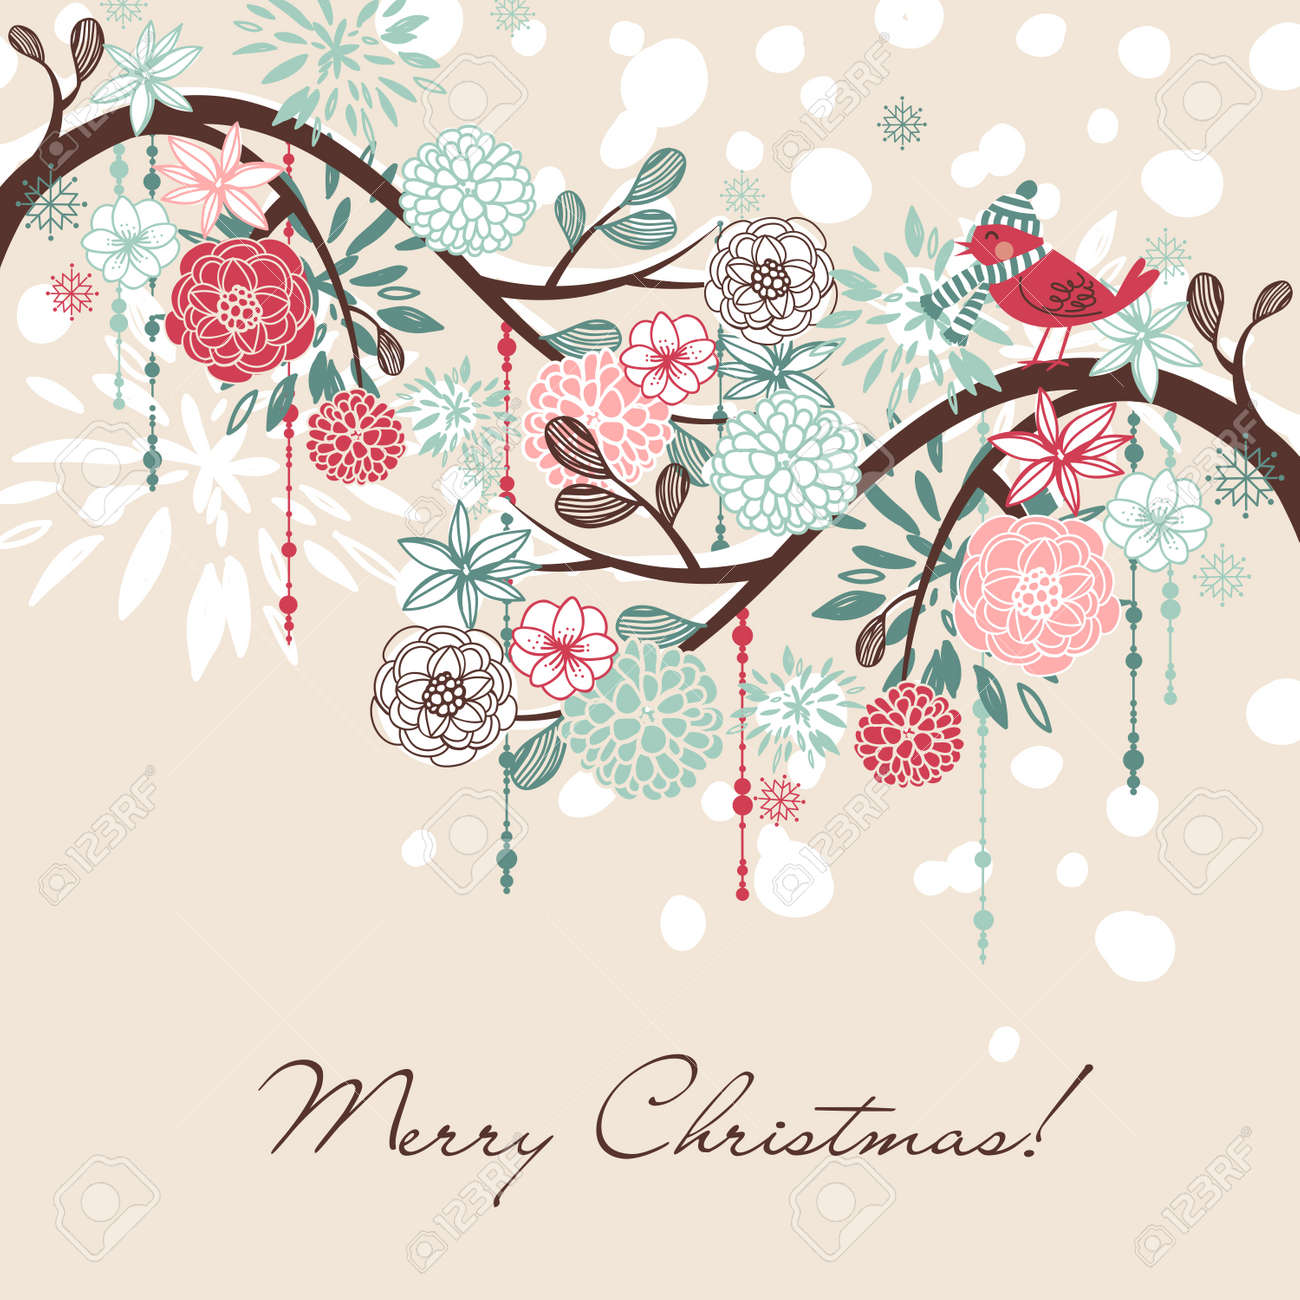 floral winter background royalty free cliparts vectors and